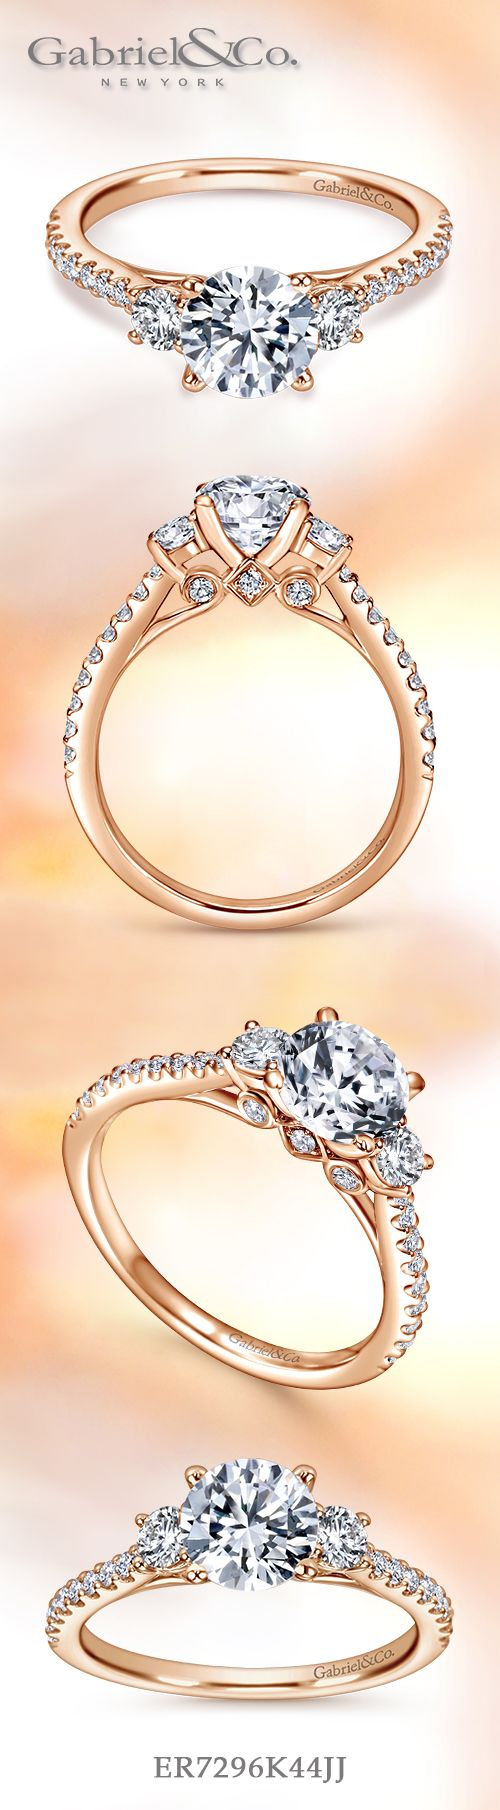 Gabriel & Co. - Voted #1 Most Preferred Bridal Brand.   Round diamonds adorn the band and gallery of this rose gold engagement ring.